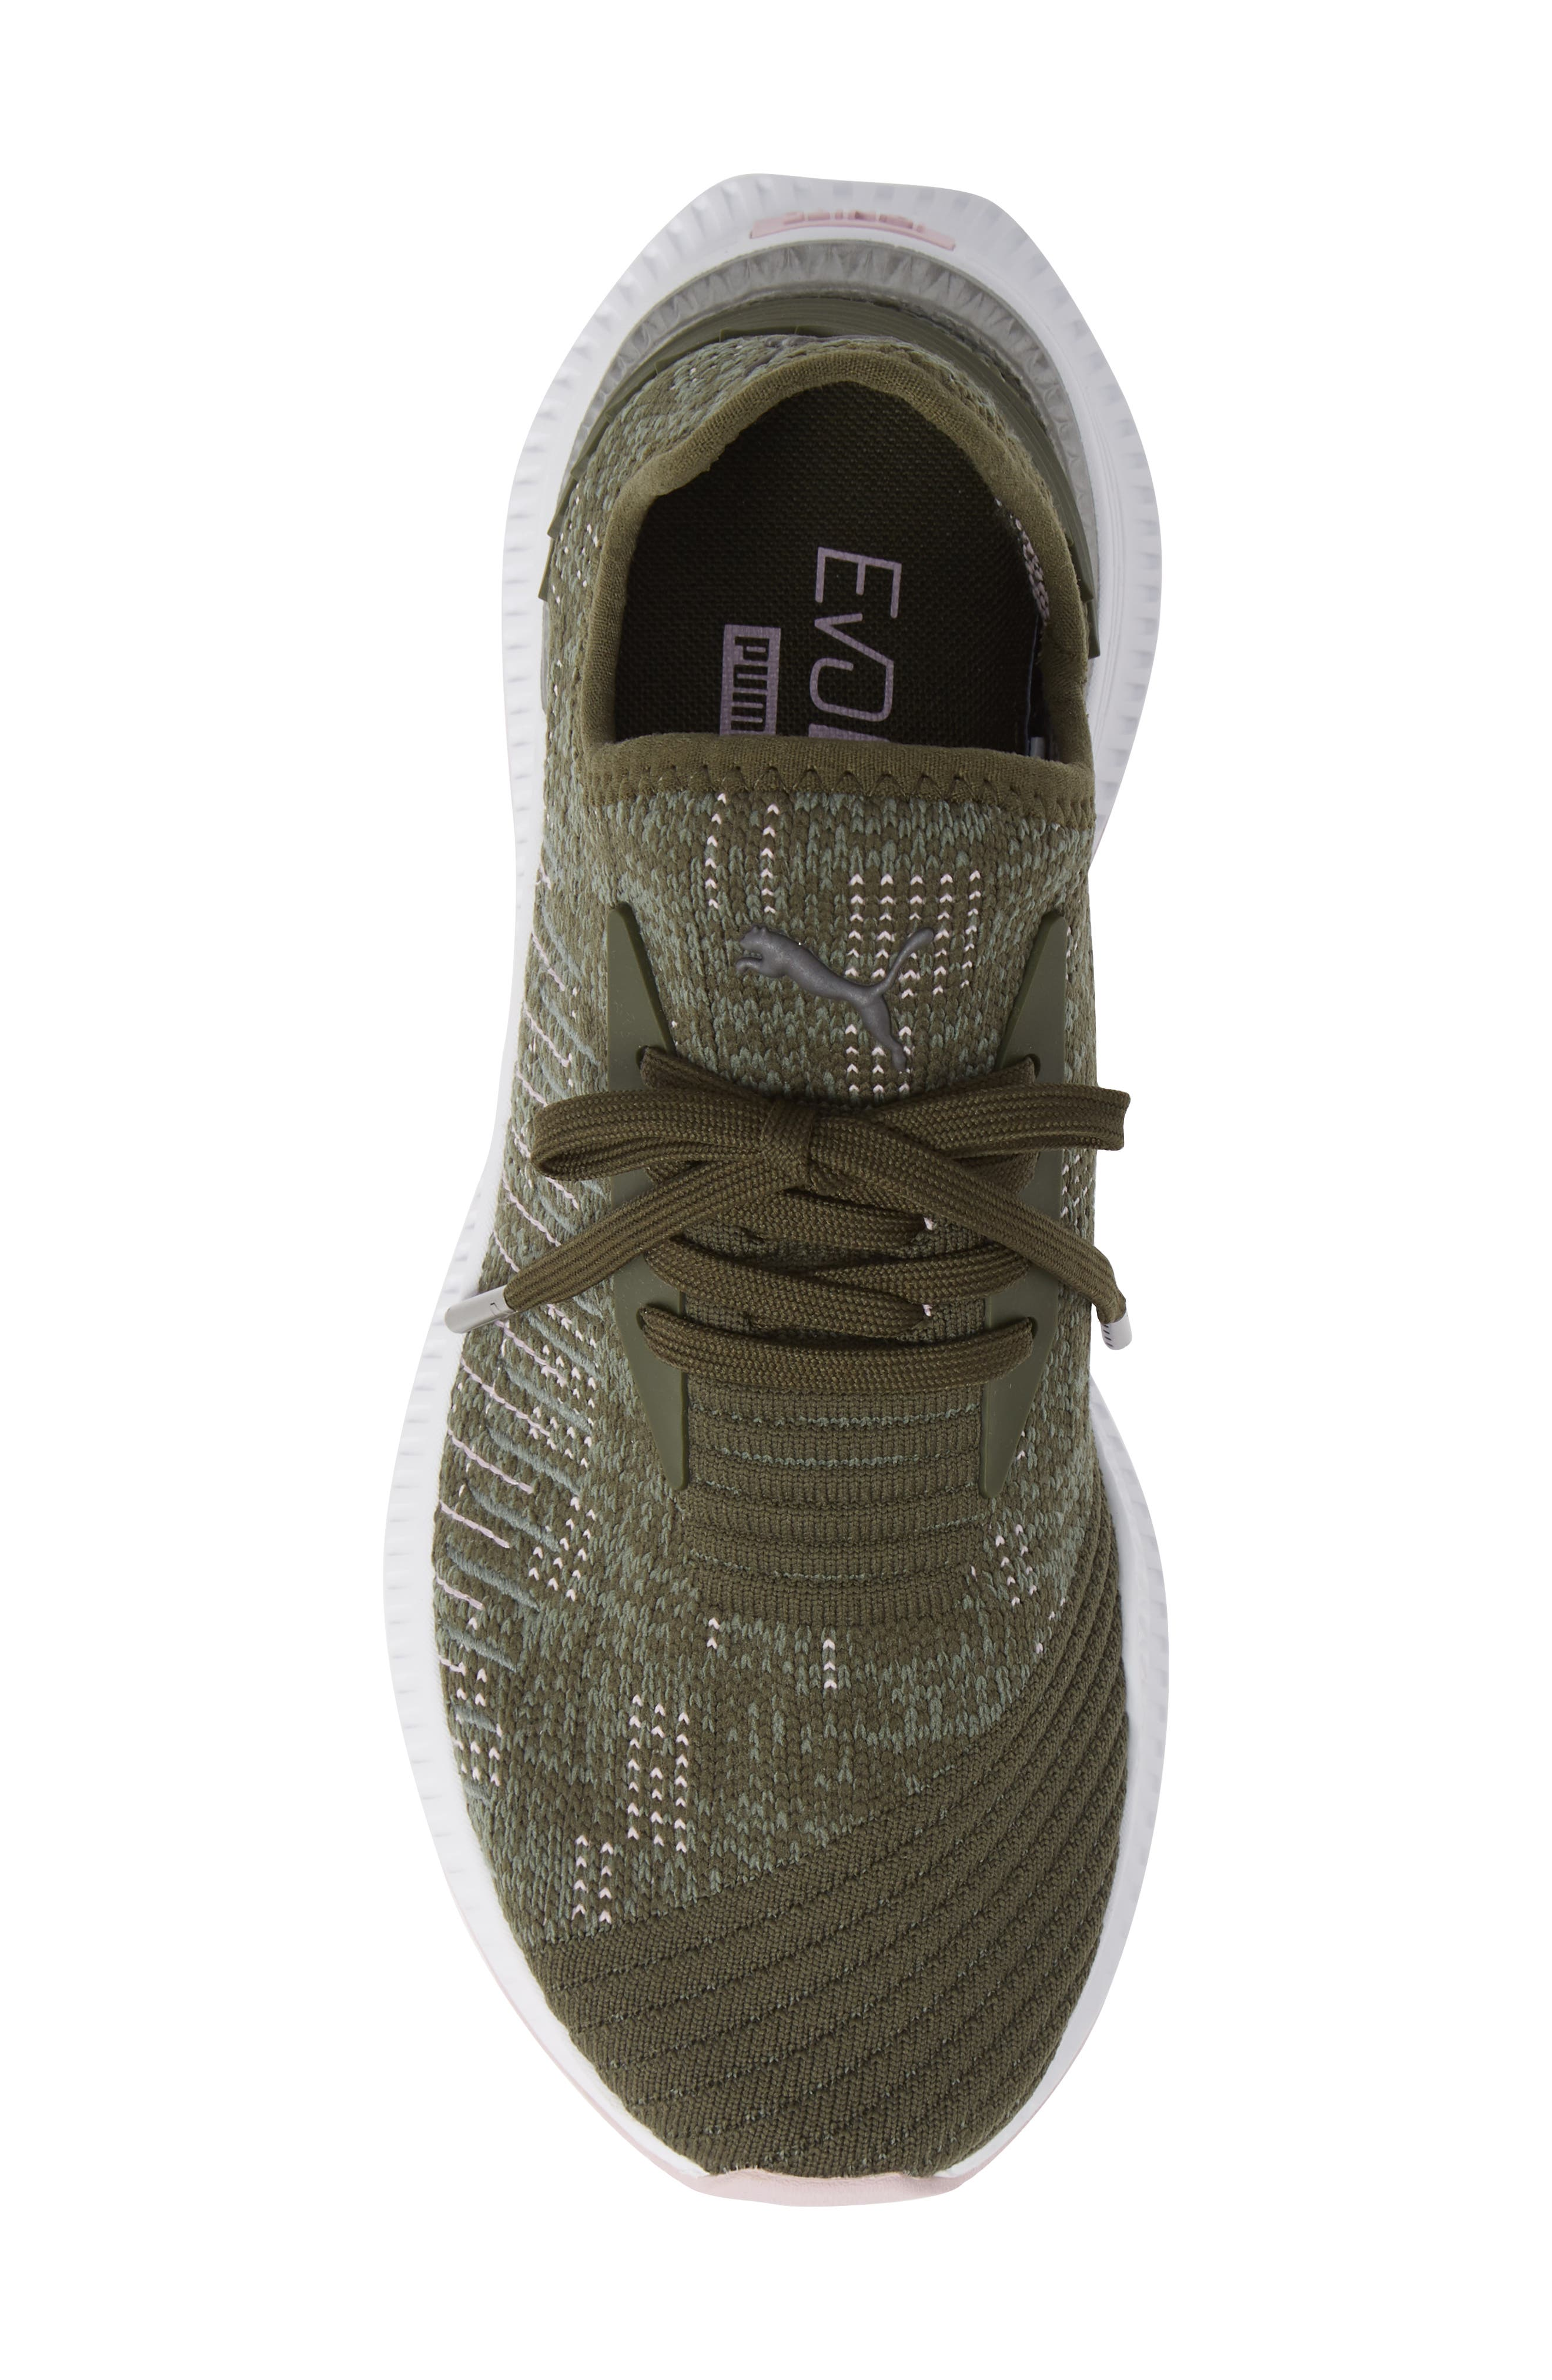 AVID evoKNIT Sneaker,                             Alternate thumbnail 5, color,                             300